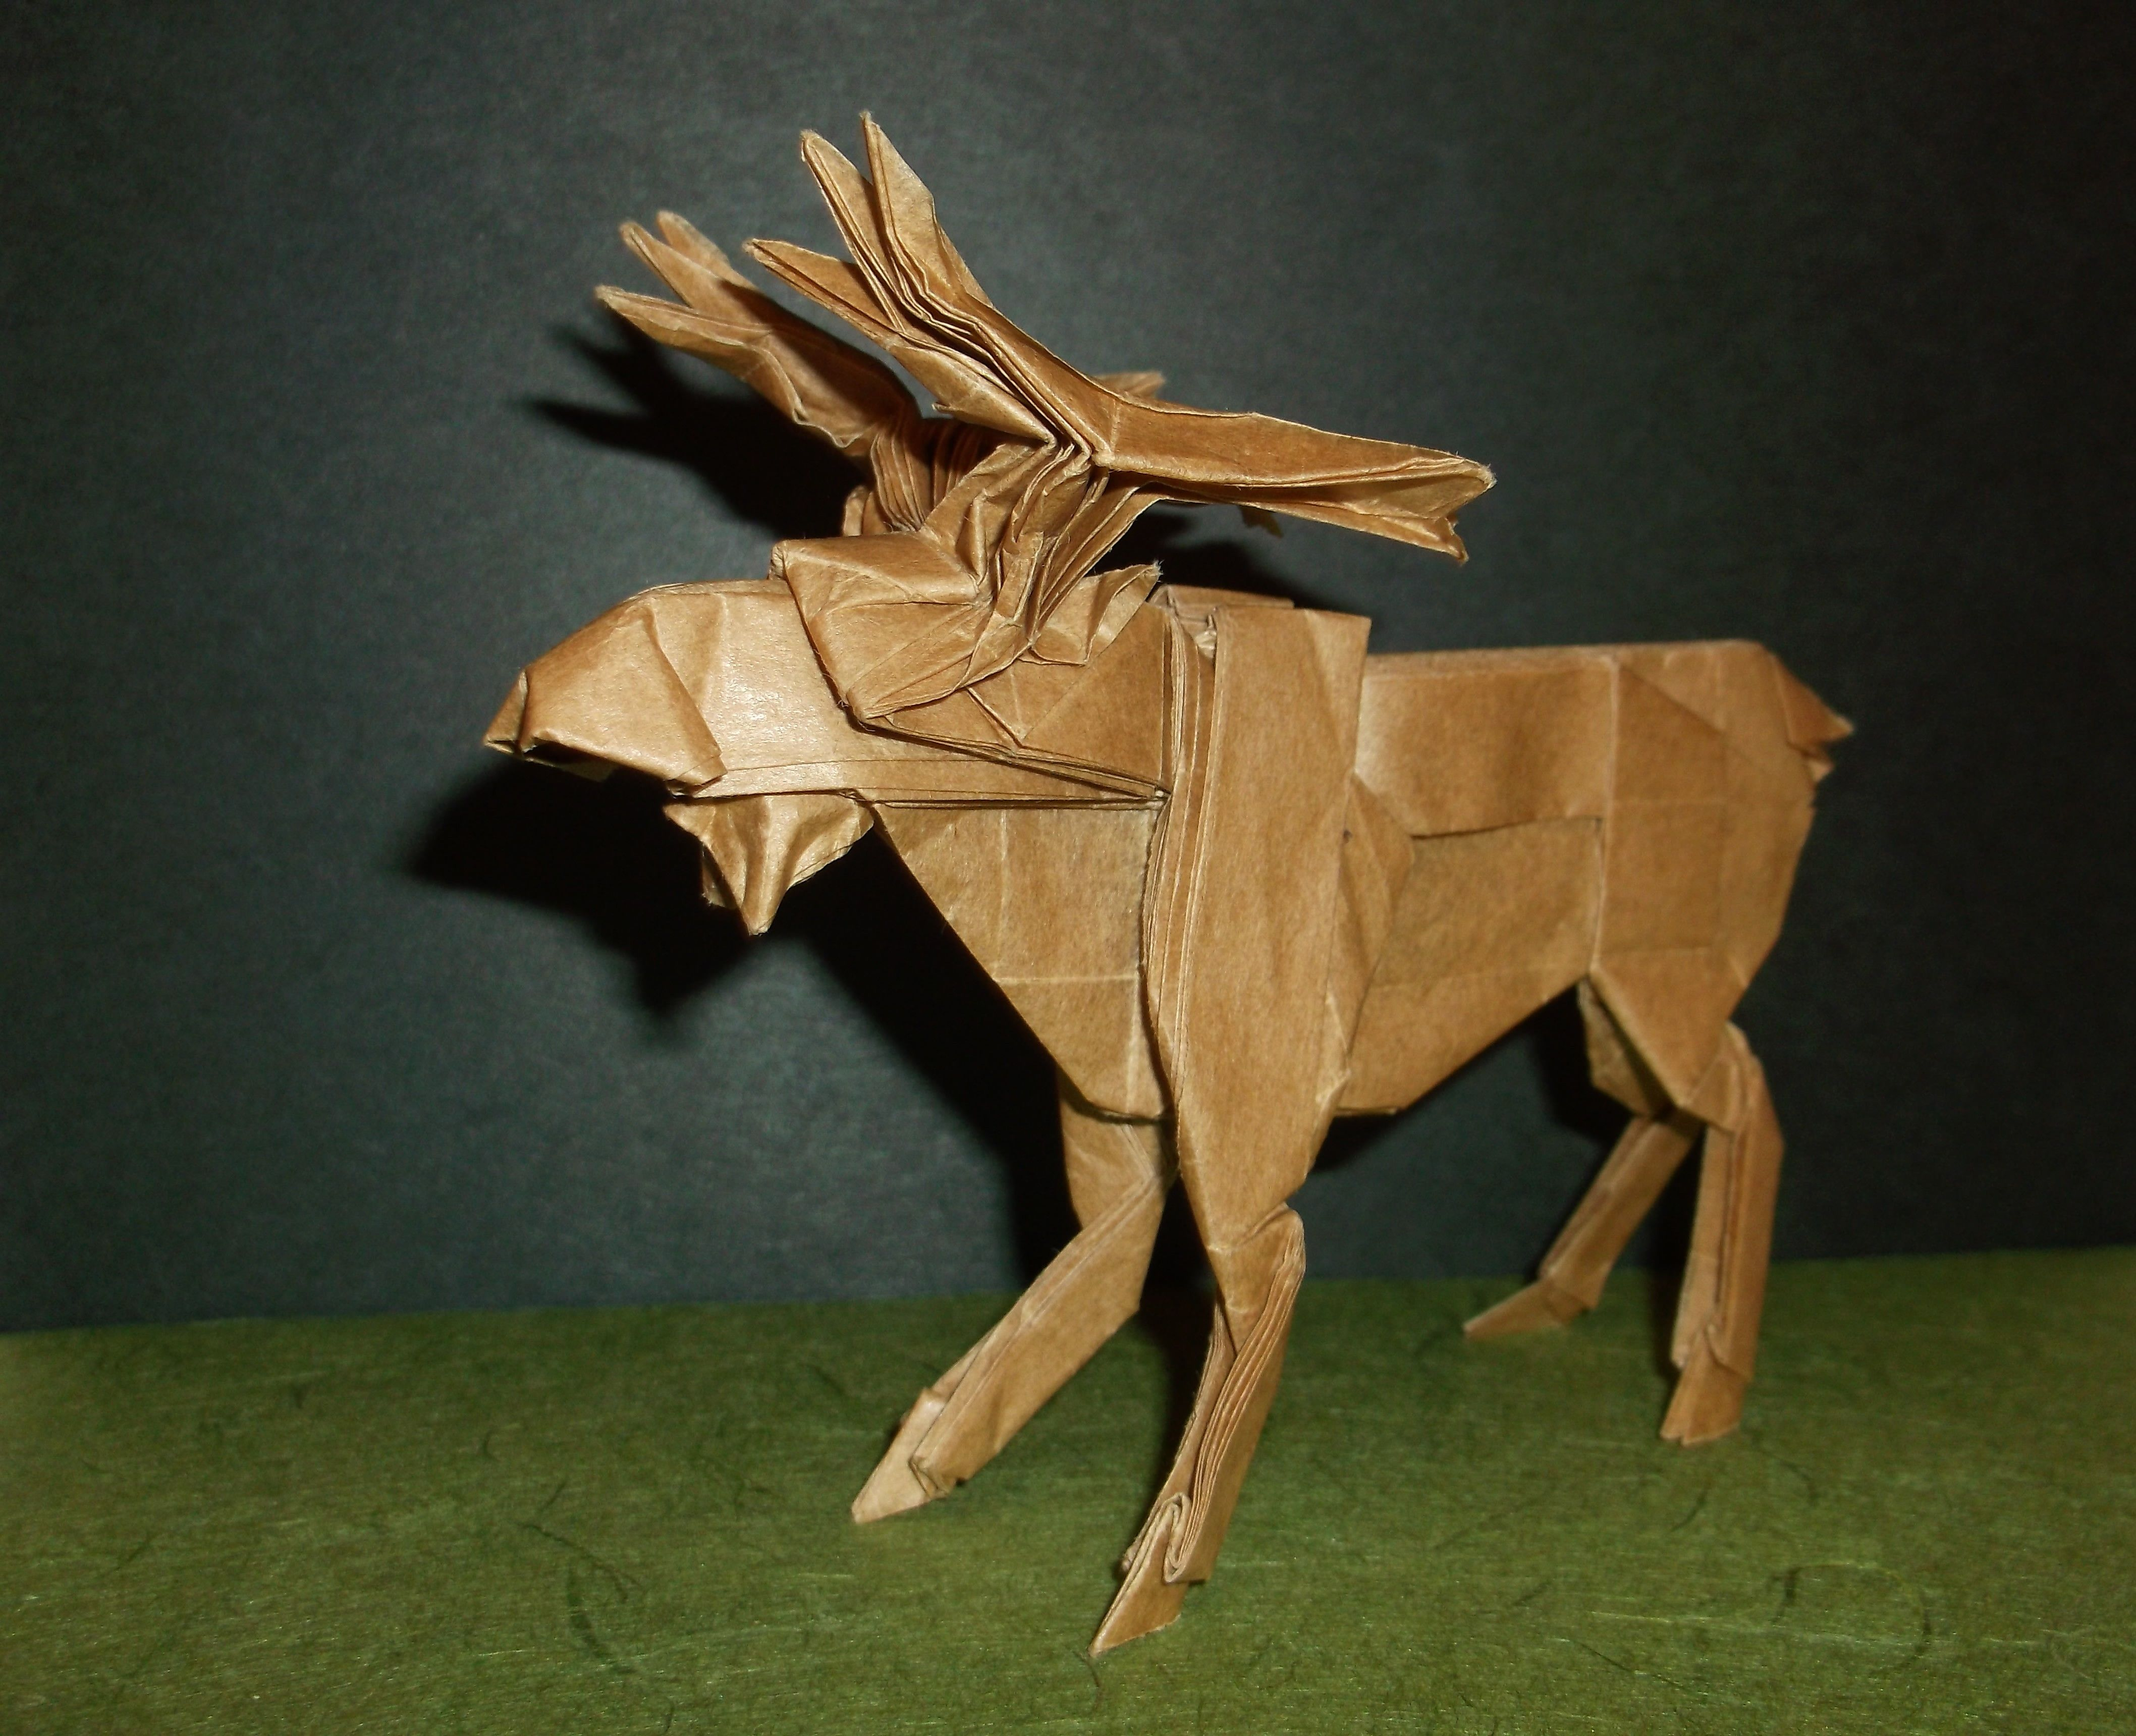 Pin By Dafydd Lee Origami On Pinterest Moose Animals Dachshund Paper Folding Diagram Mooseorigamimousseelk